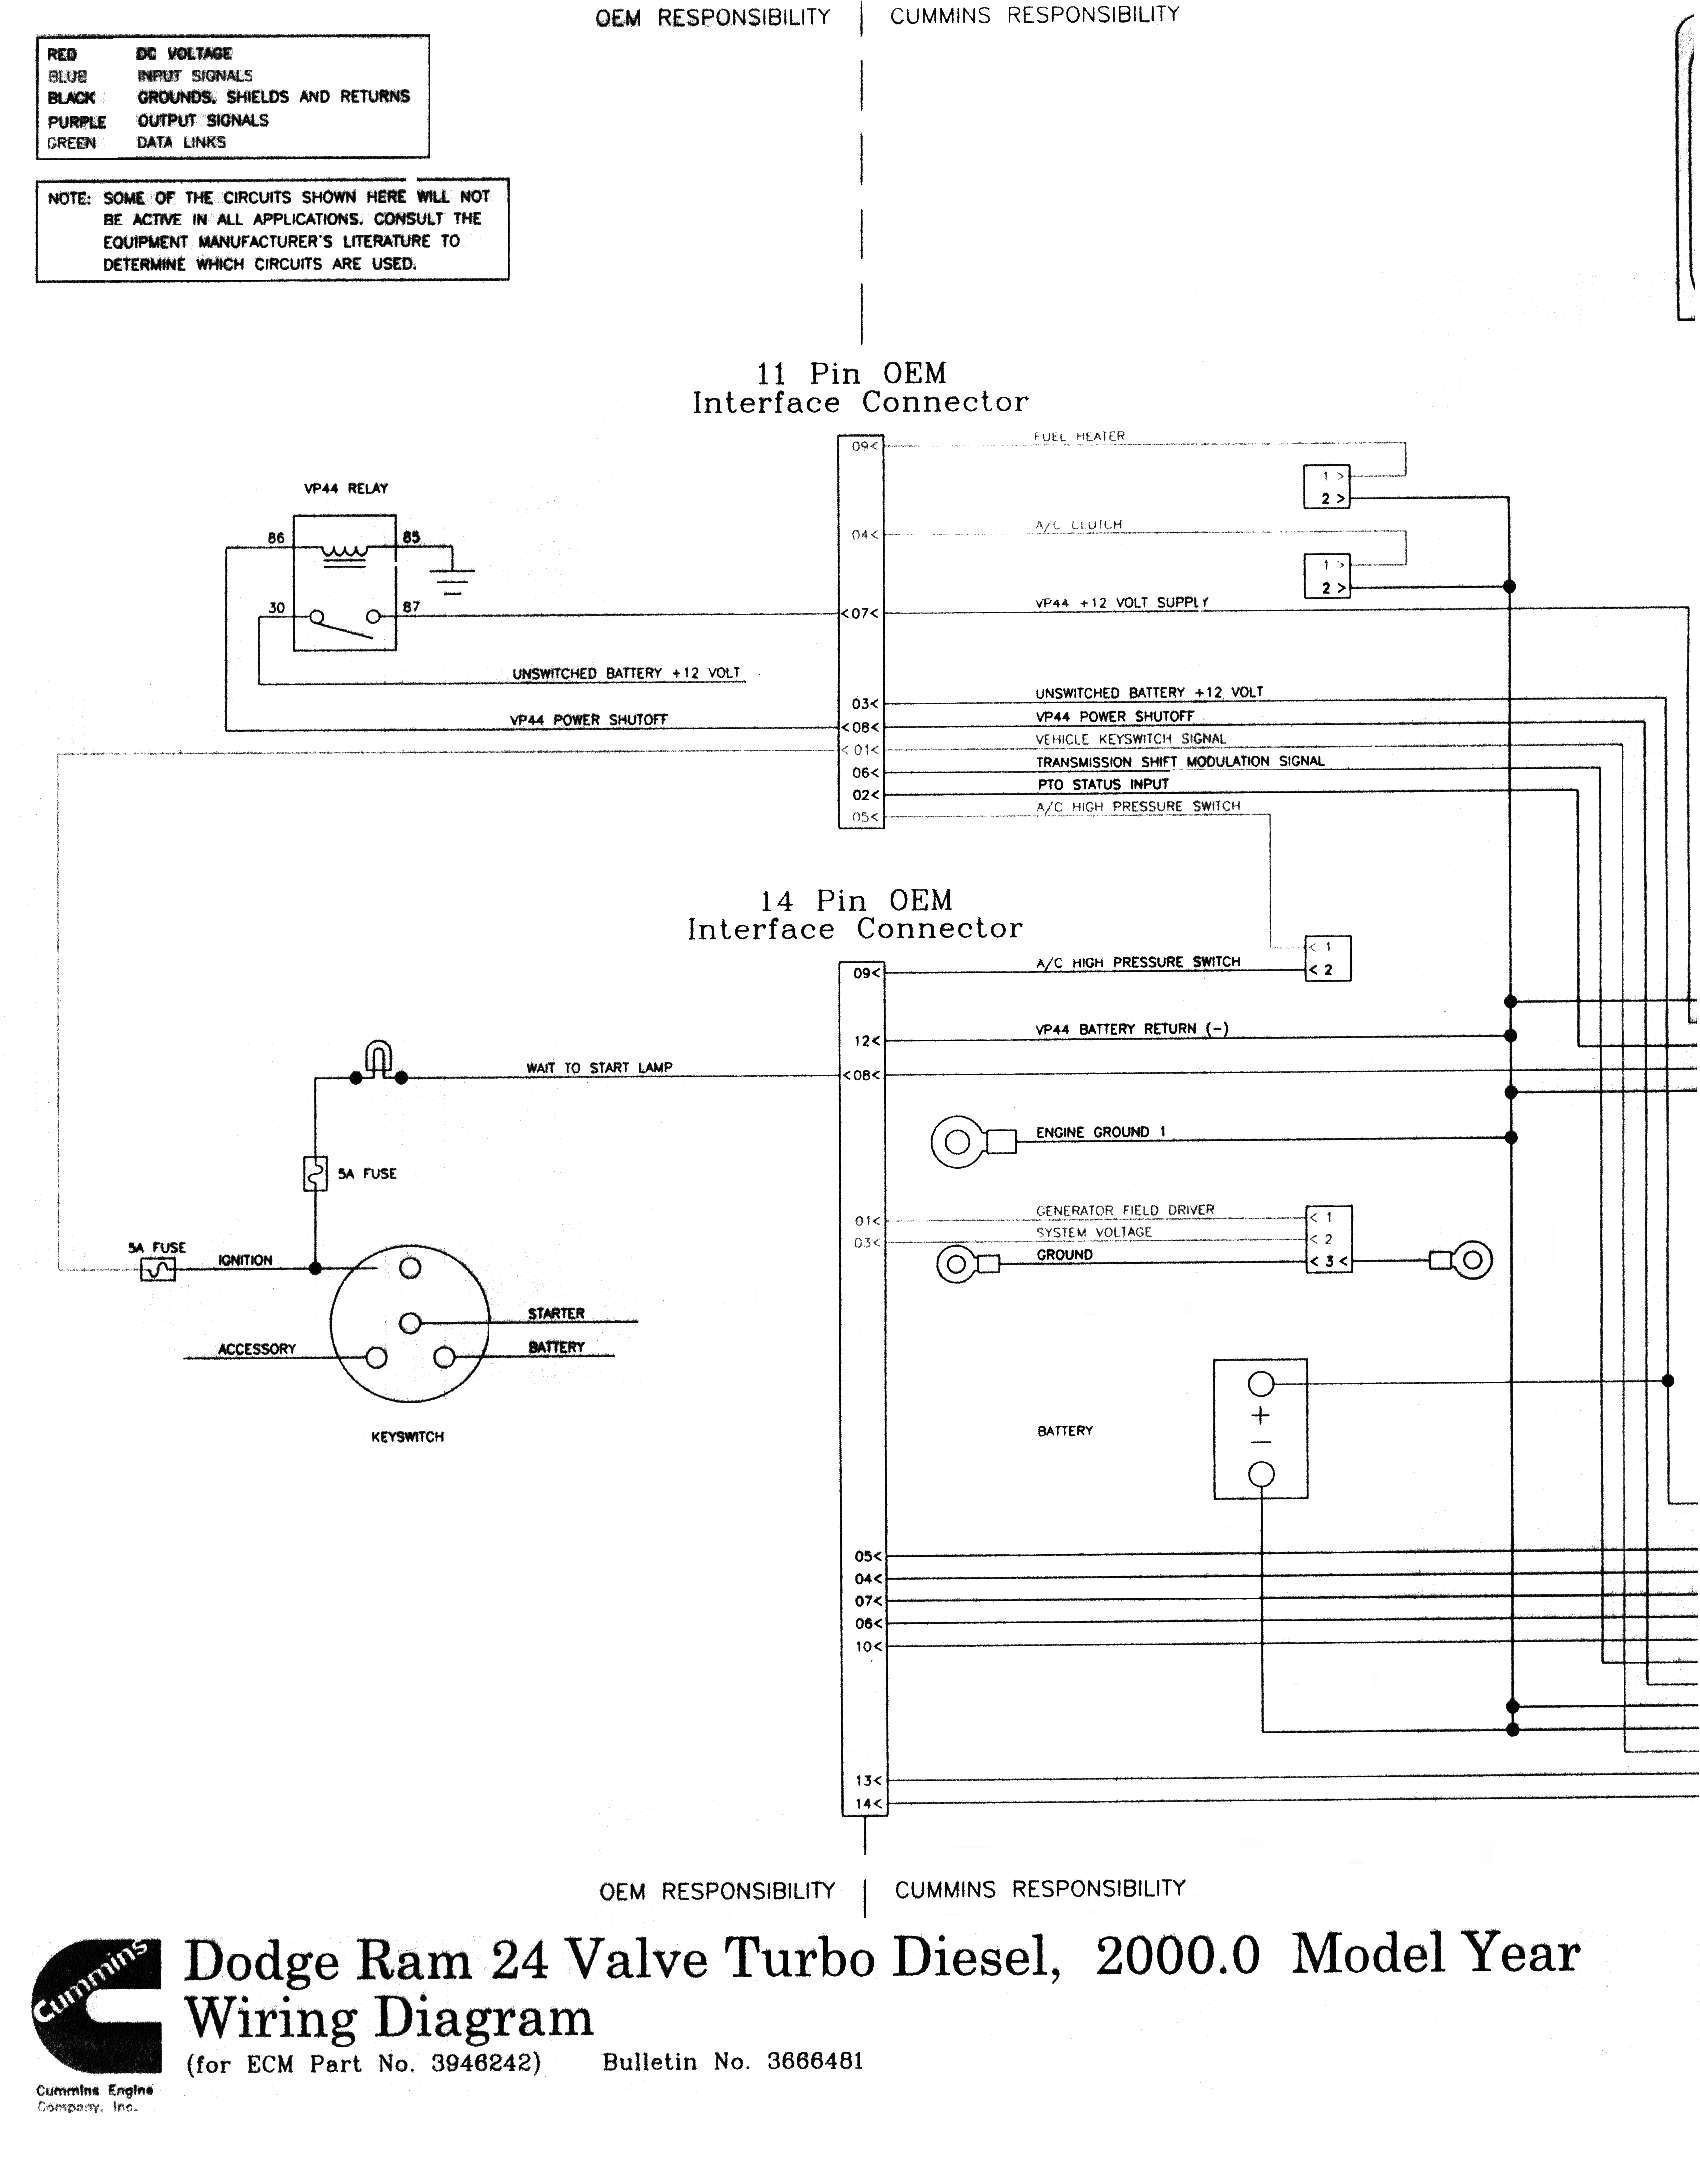 dodge mins 5 9 engine diagram wiring data u2022 rh artlaw co Dodge Ram 1500  Vacuum Diagram Dodge Durango 4.7 Engine Diagram